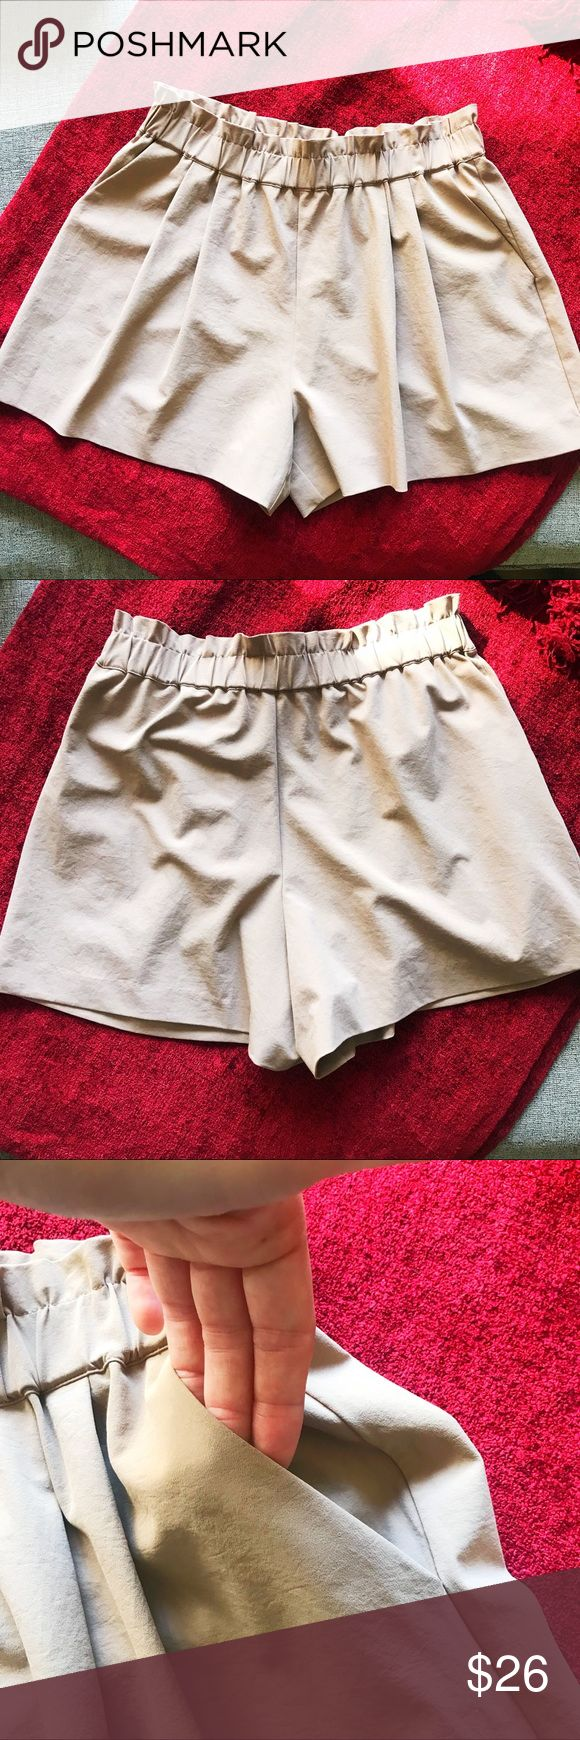 """Armani Exchange Flare Beige Shorts Beige flare shorts by Armani Exchange. Since Medium. Waist features elastic band 14"""" flat can extent up to 18"""". Please see pictures for other measurements. It has two functional pockets in front. Gently used item in excellent condition. A/X Armani Exchange Shorts"""